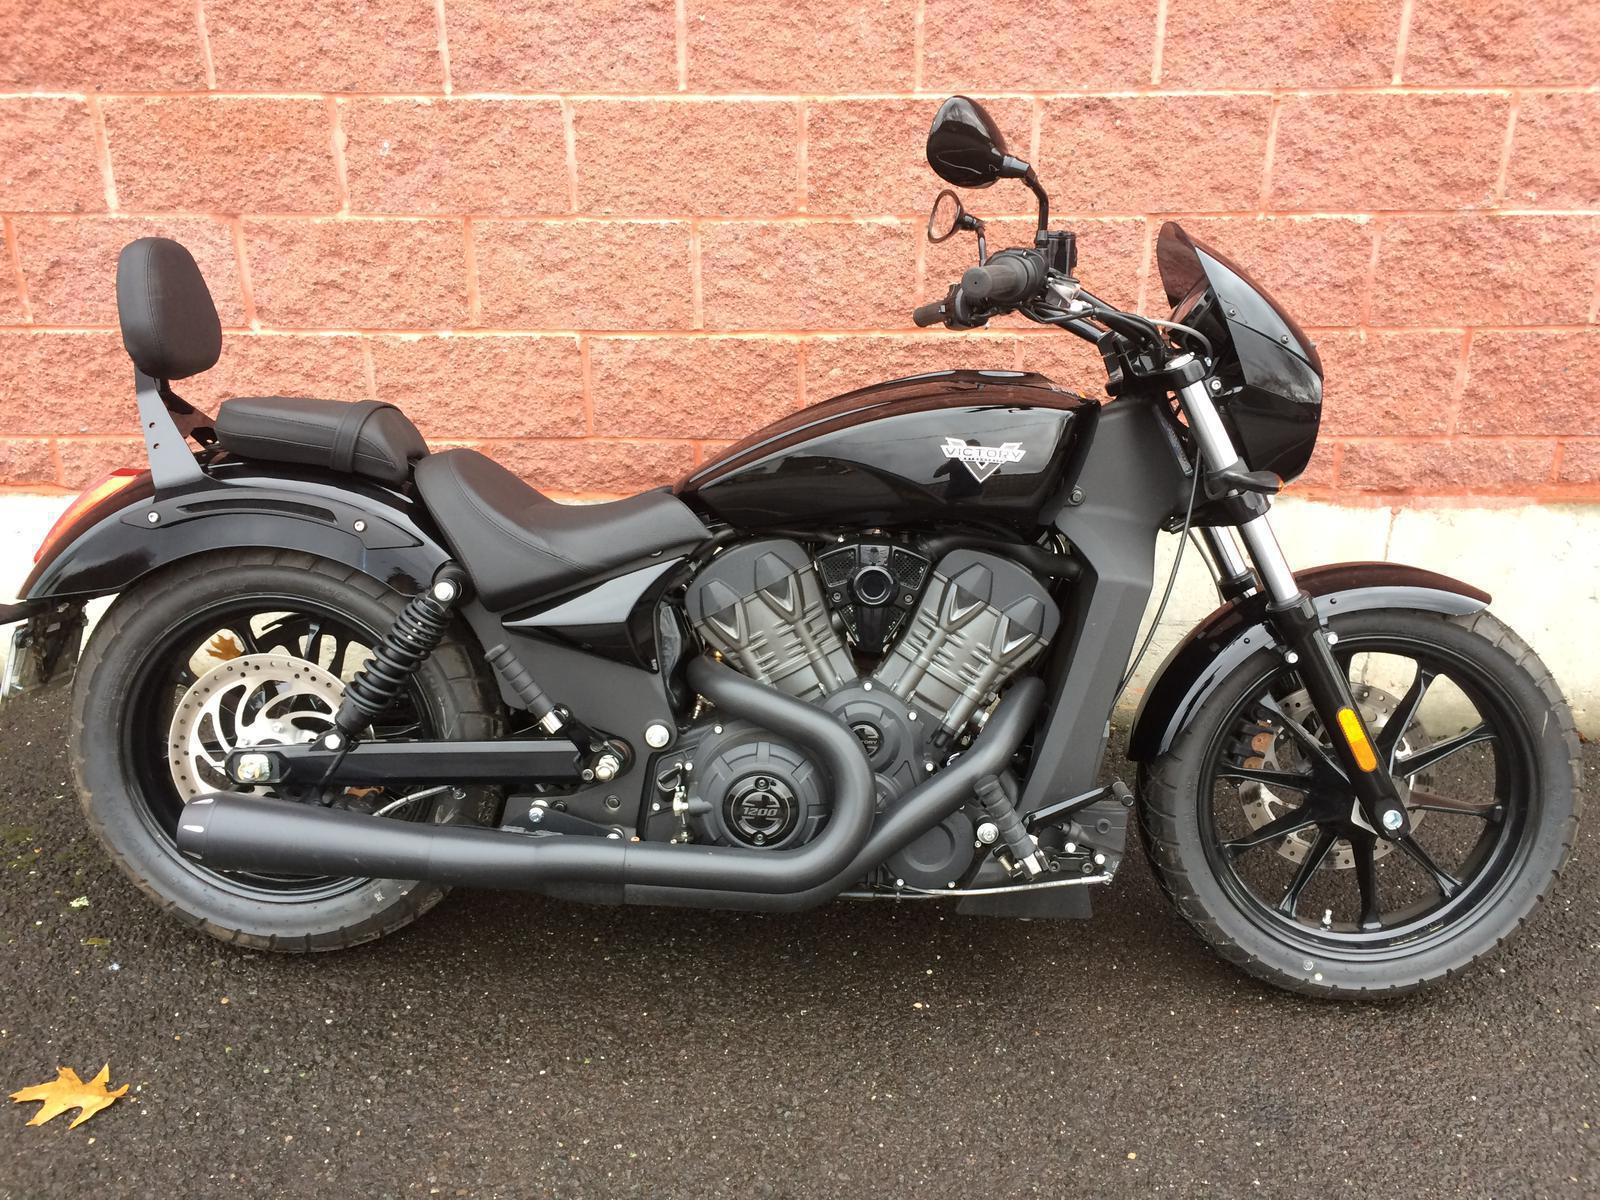 2017 Victory Motorcycles Octane For Sale In Waterbury Ct Doc S